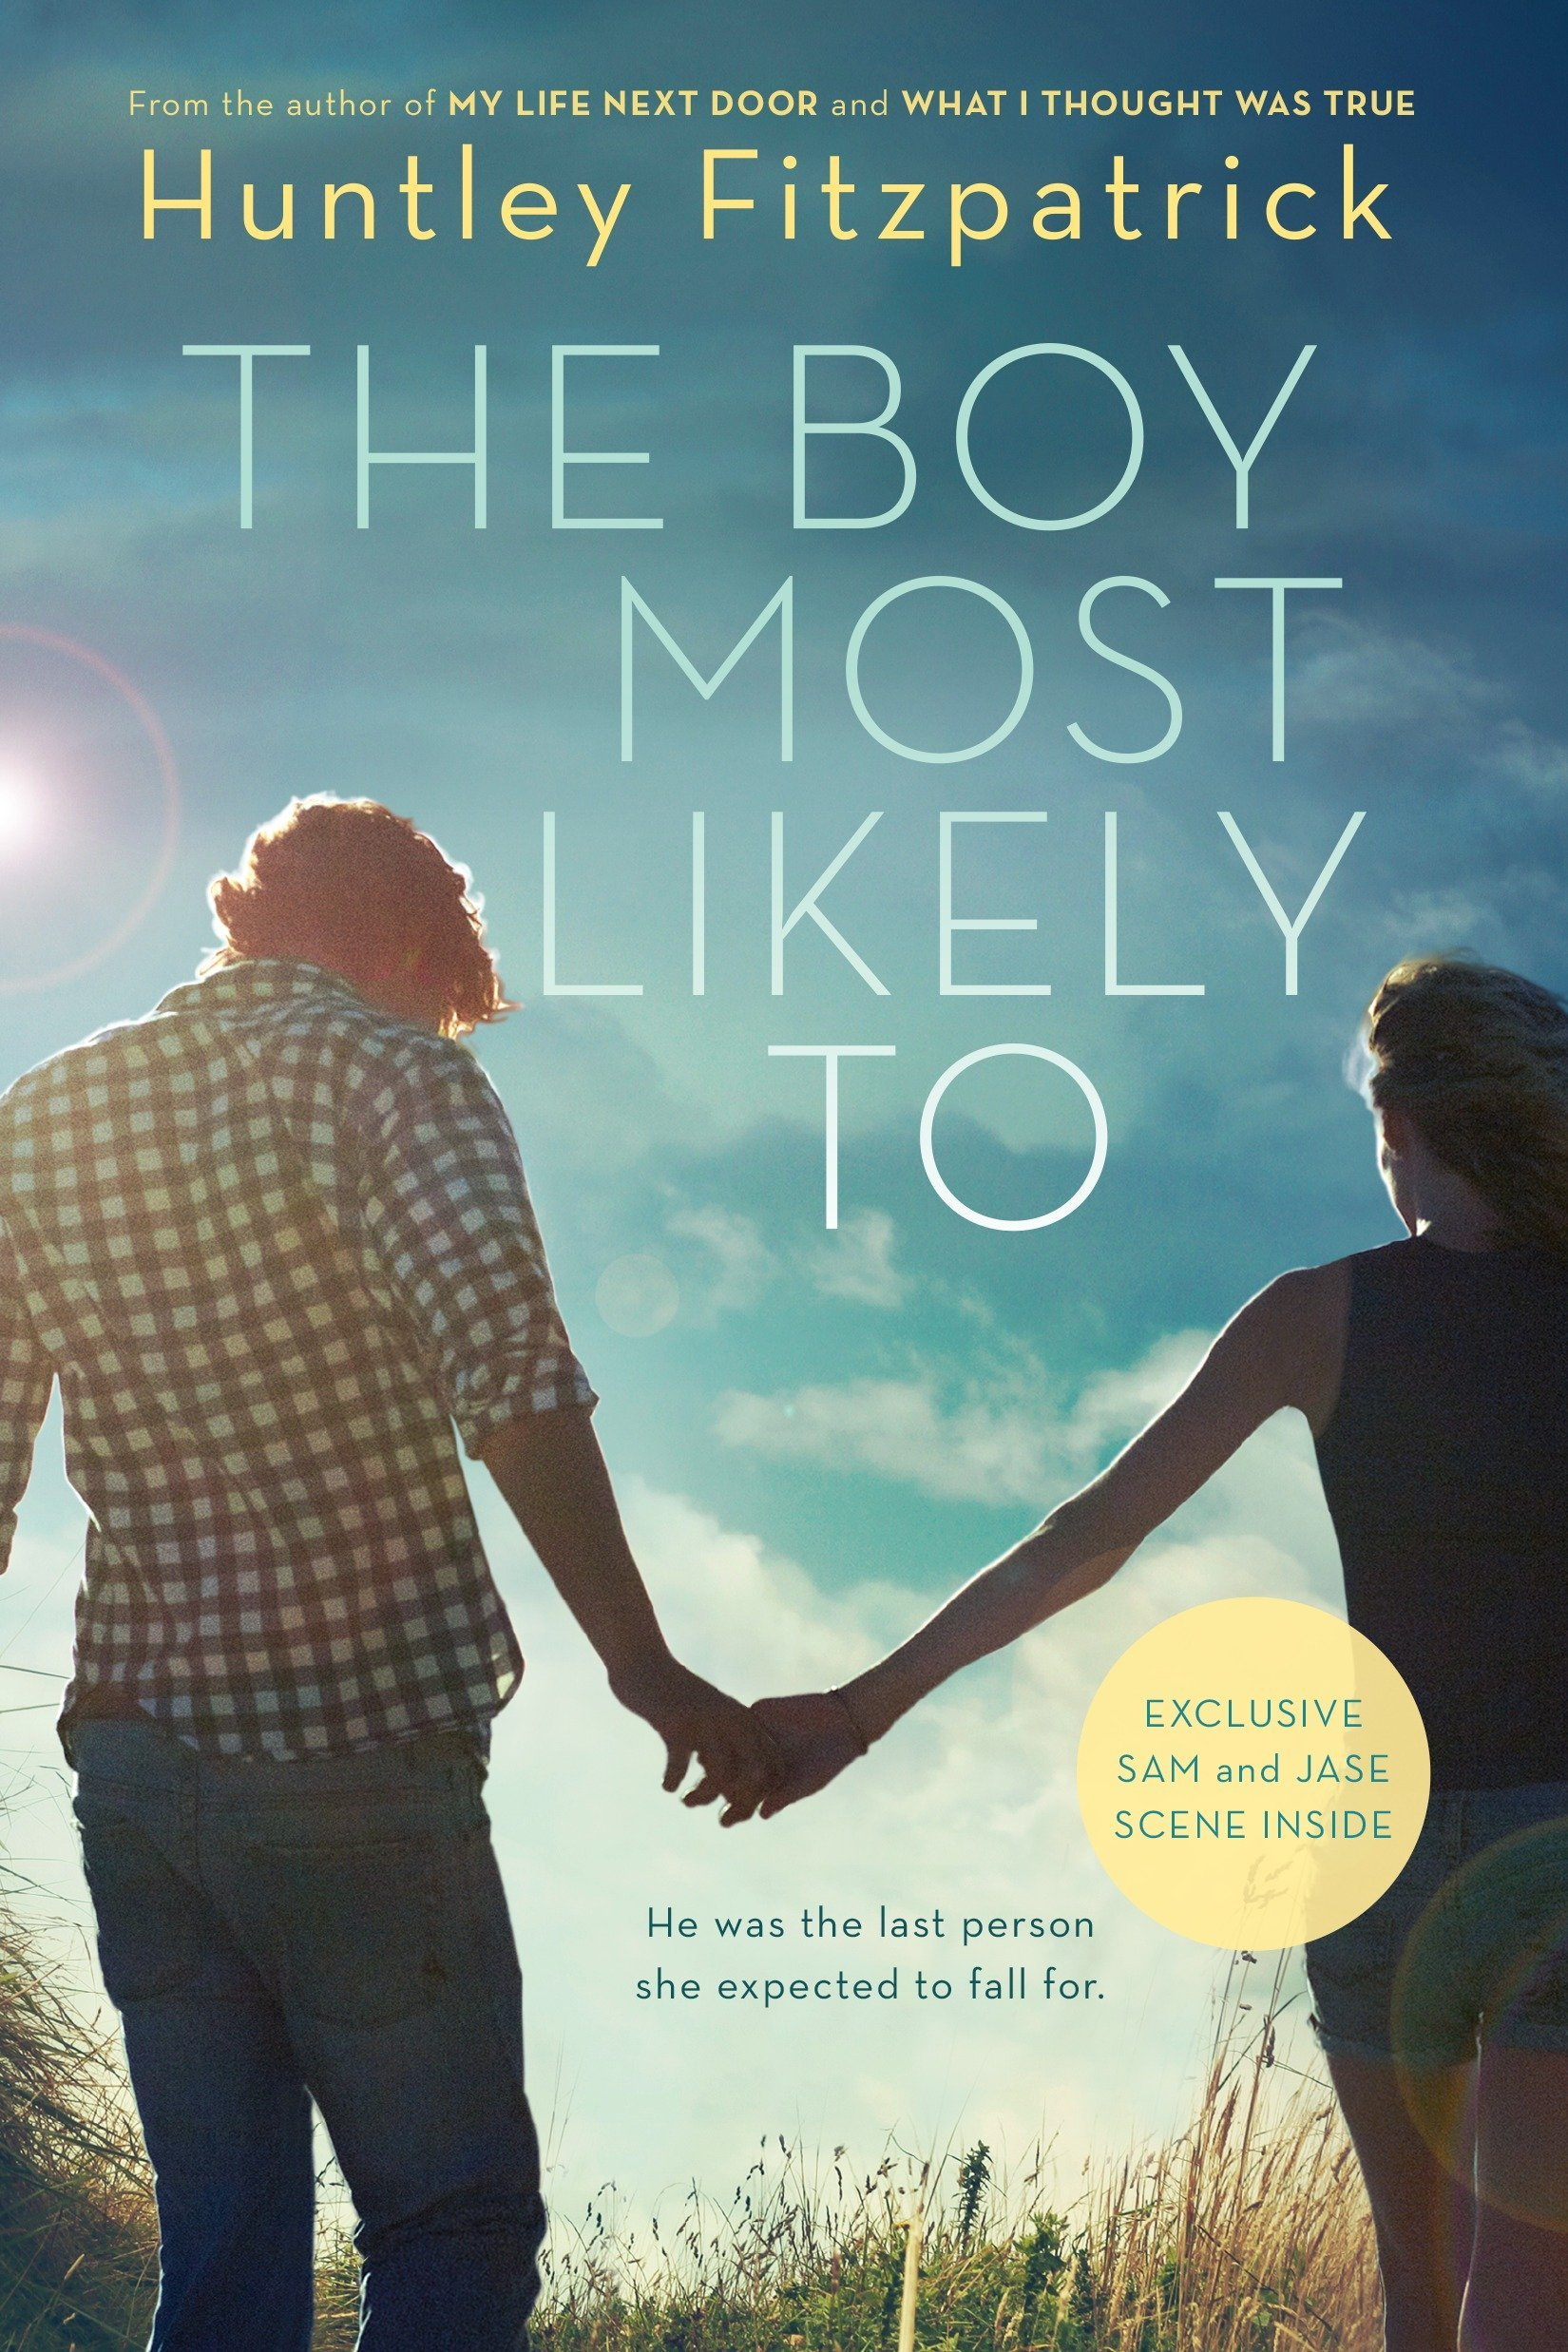 Amazon.com: The Boy Most Likely To (9780147513076): Huntley ...